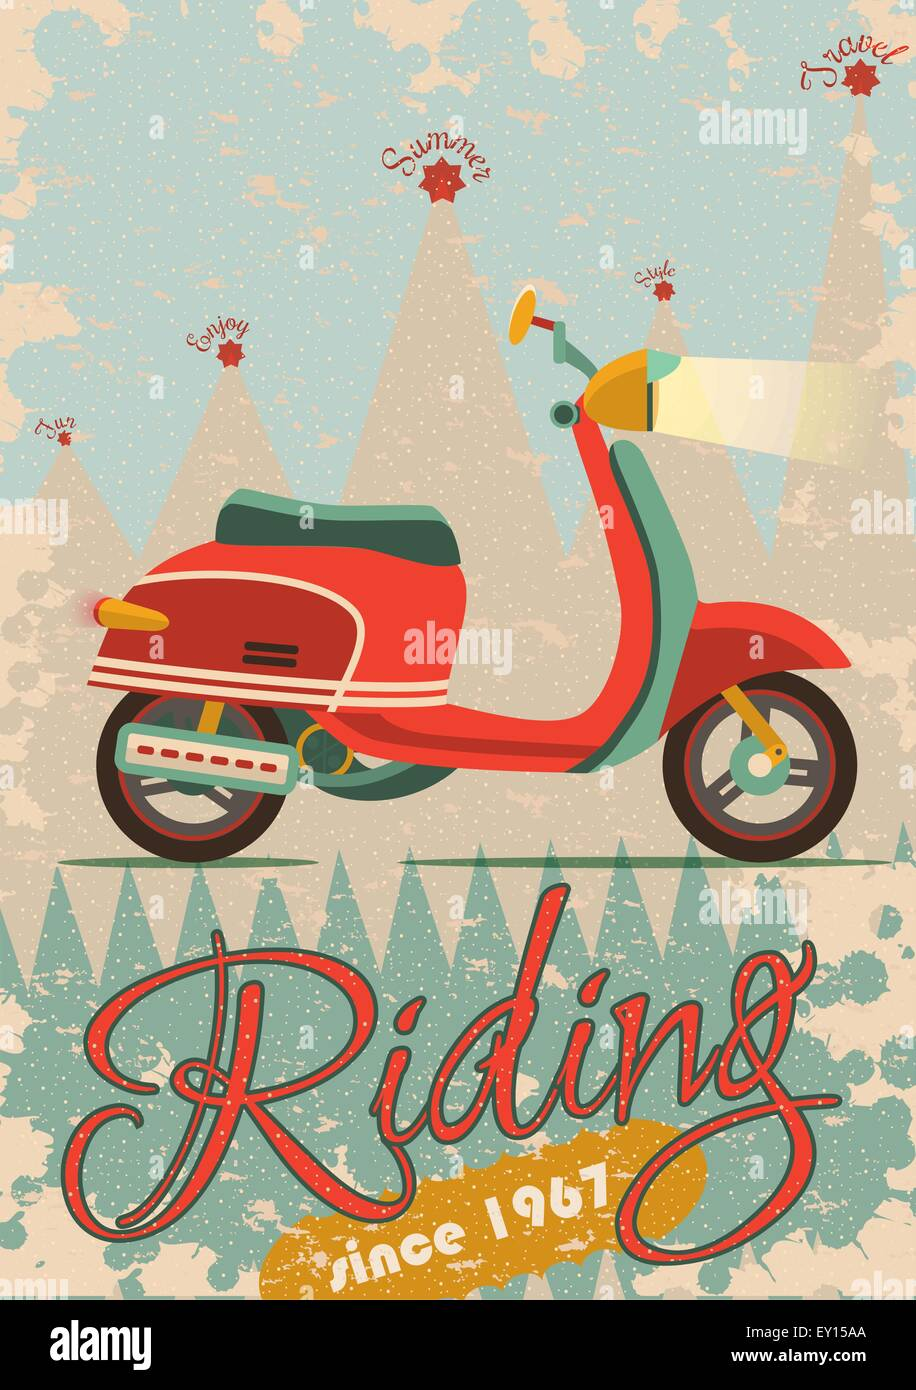 Retro Poster Design With Vintage Scooter Illustration Sample Text Stock Vector Image Art Alamy